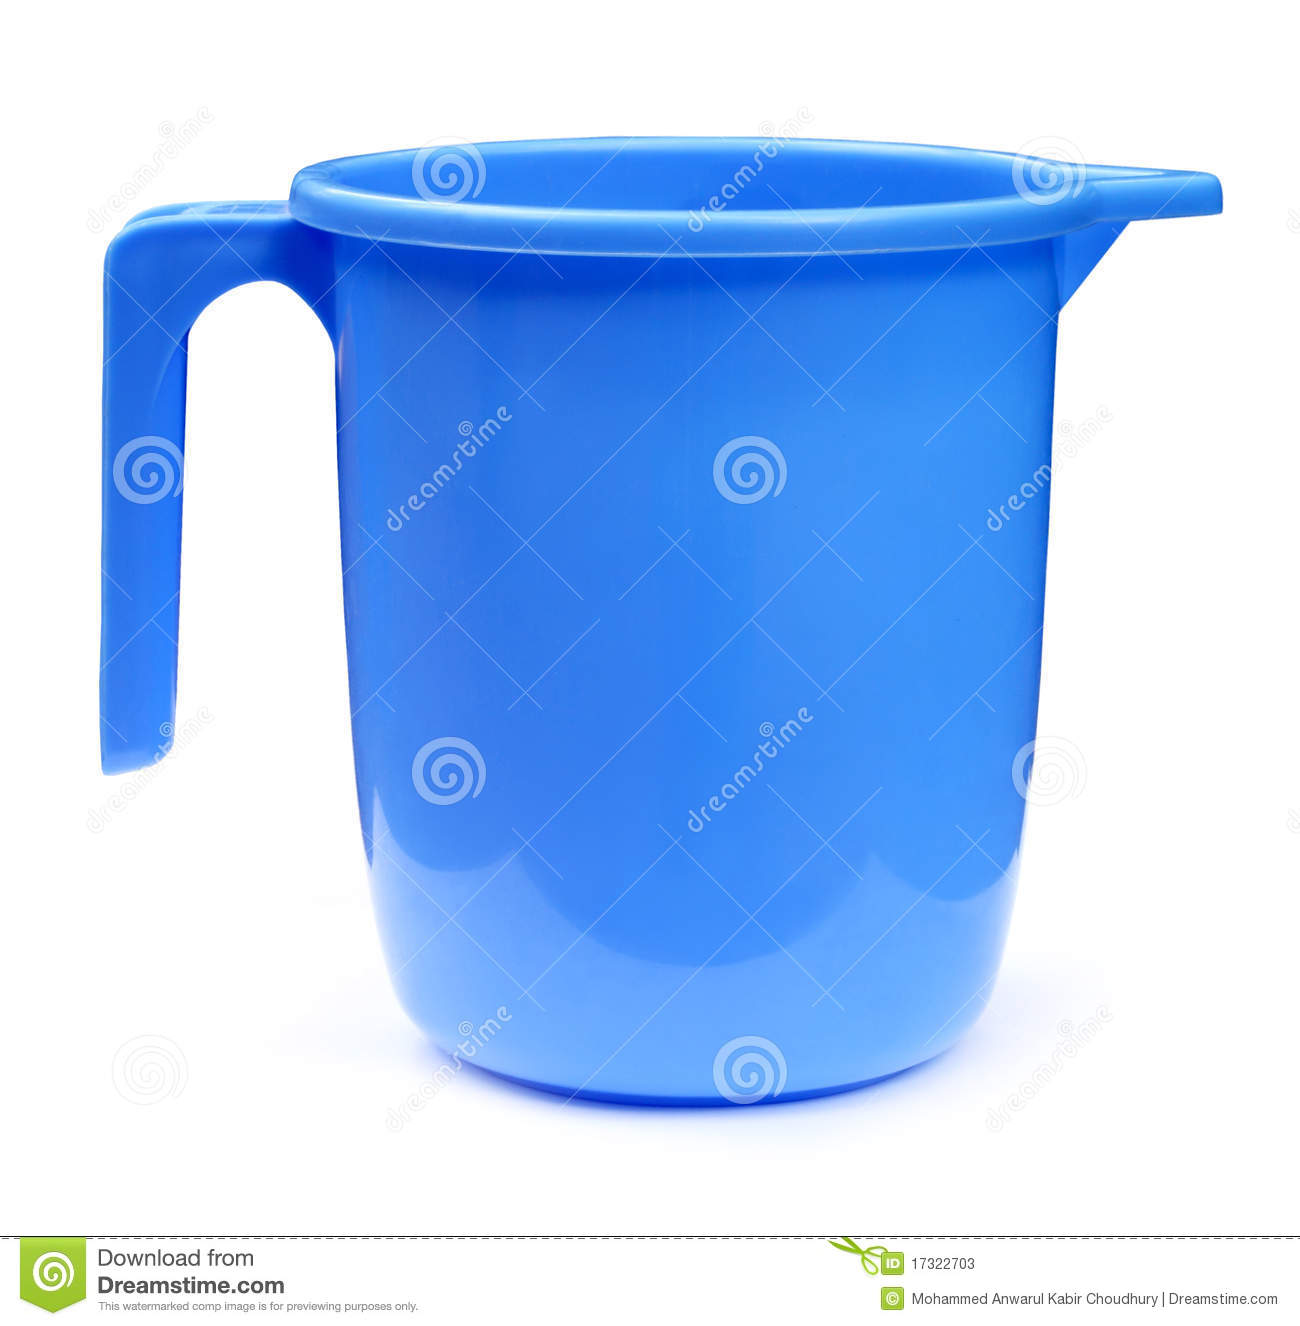 Plastic bathroom mug isolated over white background.